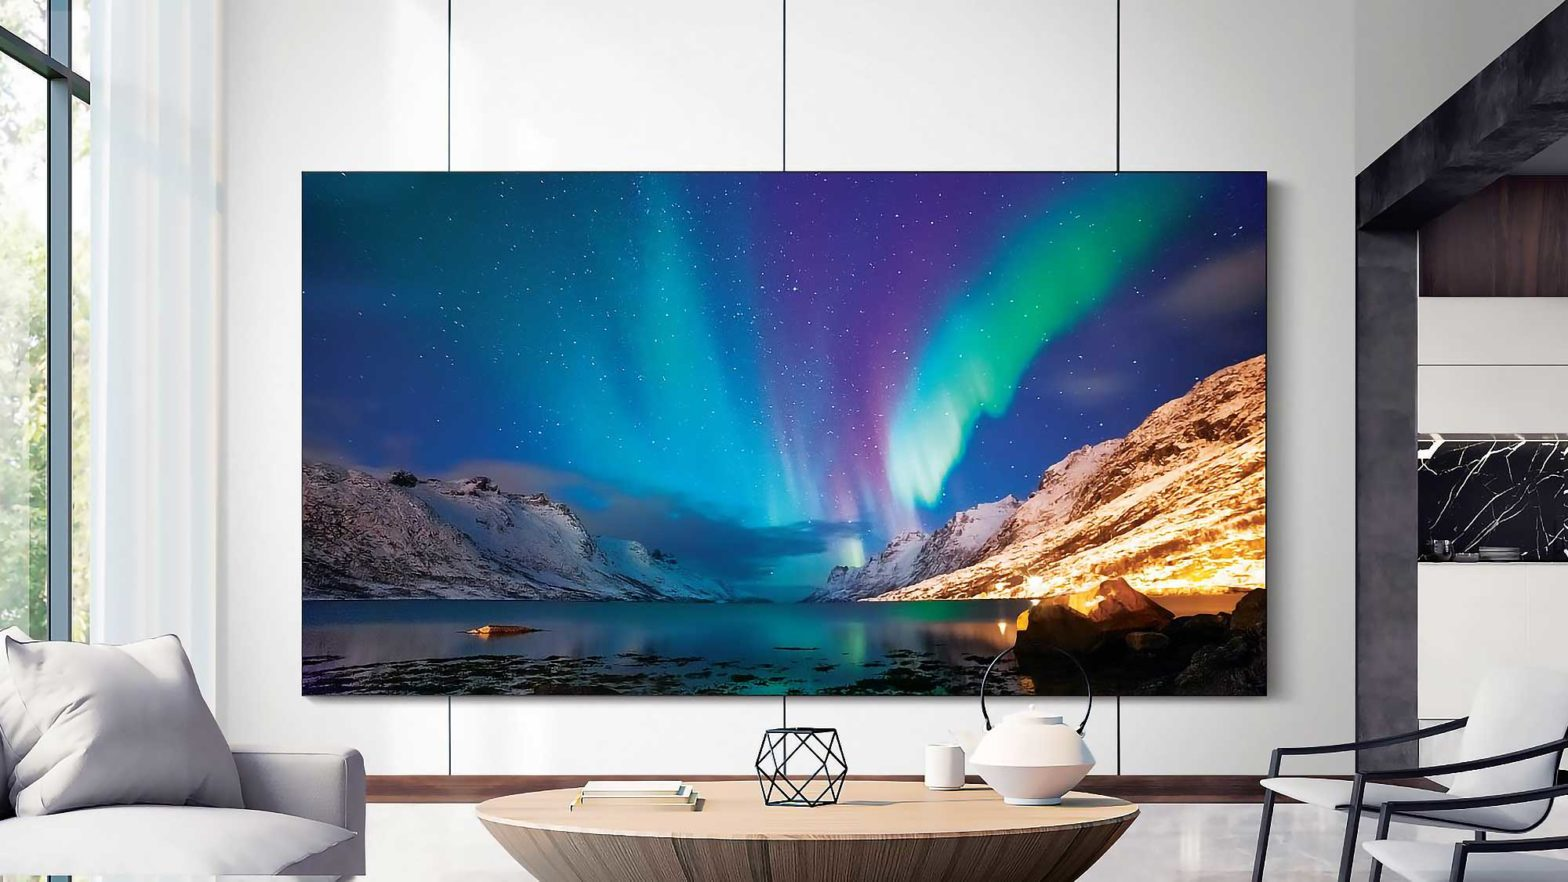 New Samsung TVs Unveiled CES 2020